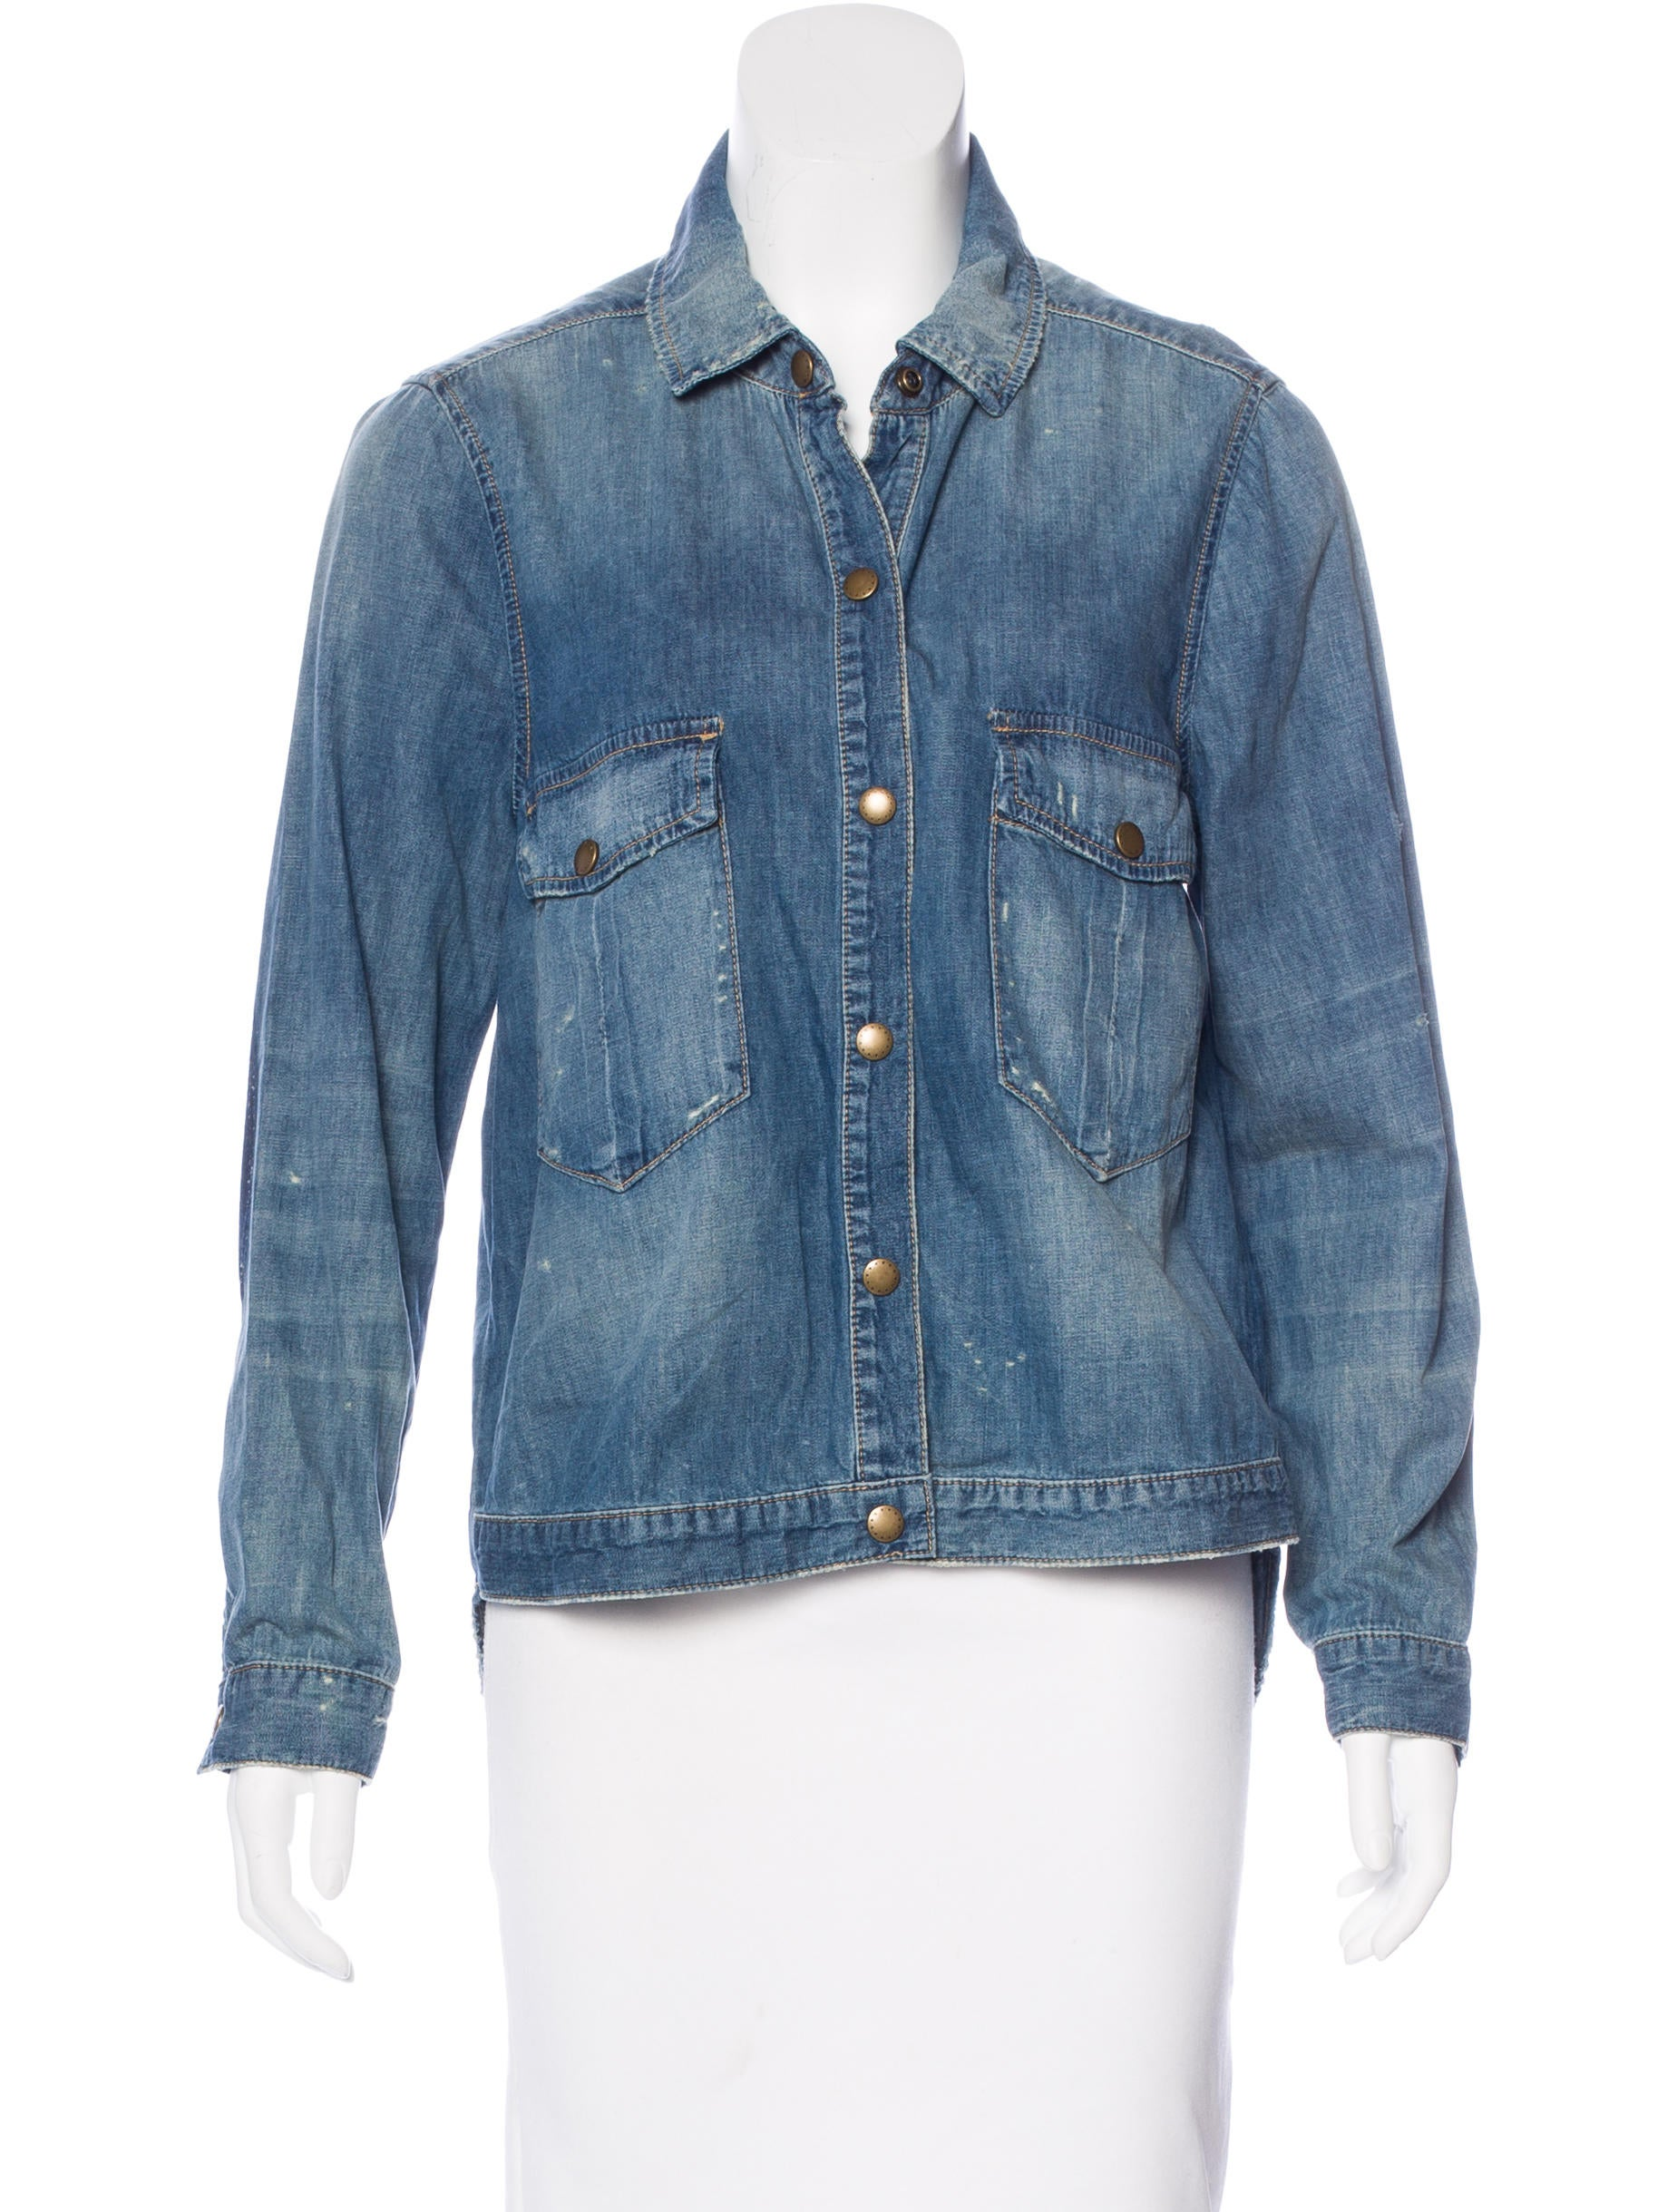 The great chambray button up top clothing wgrea20550 for Chambray top